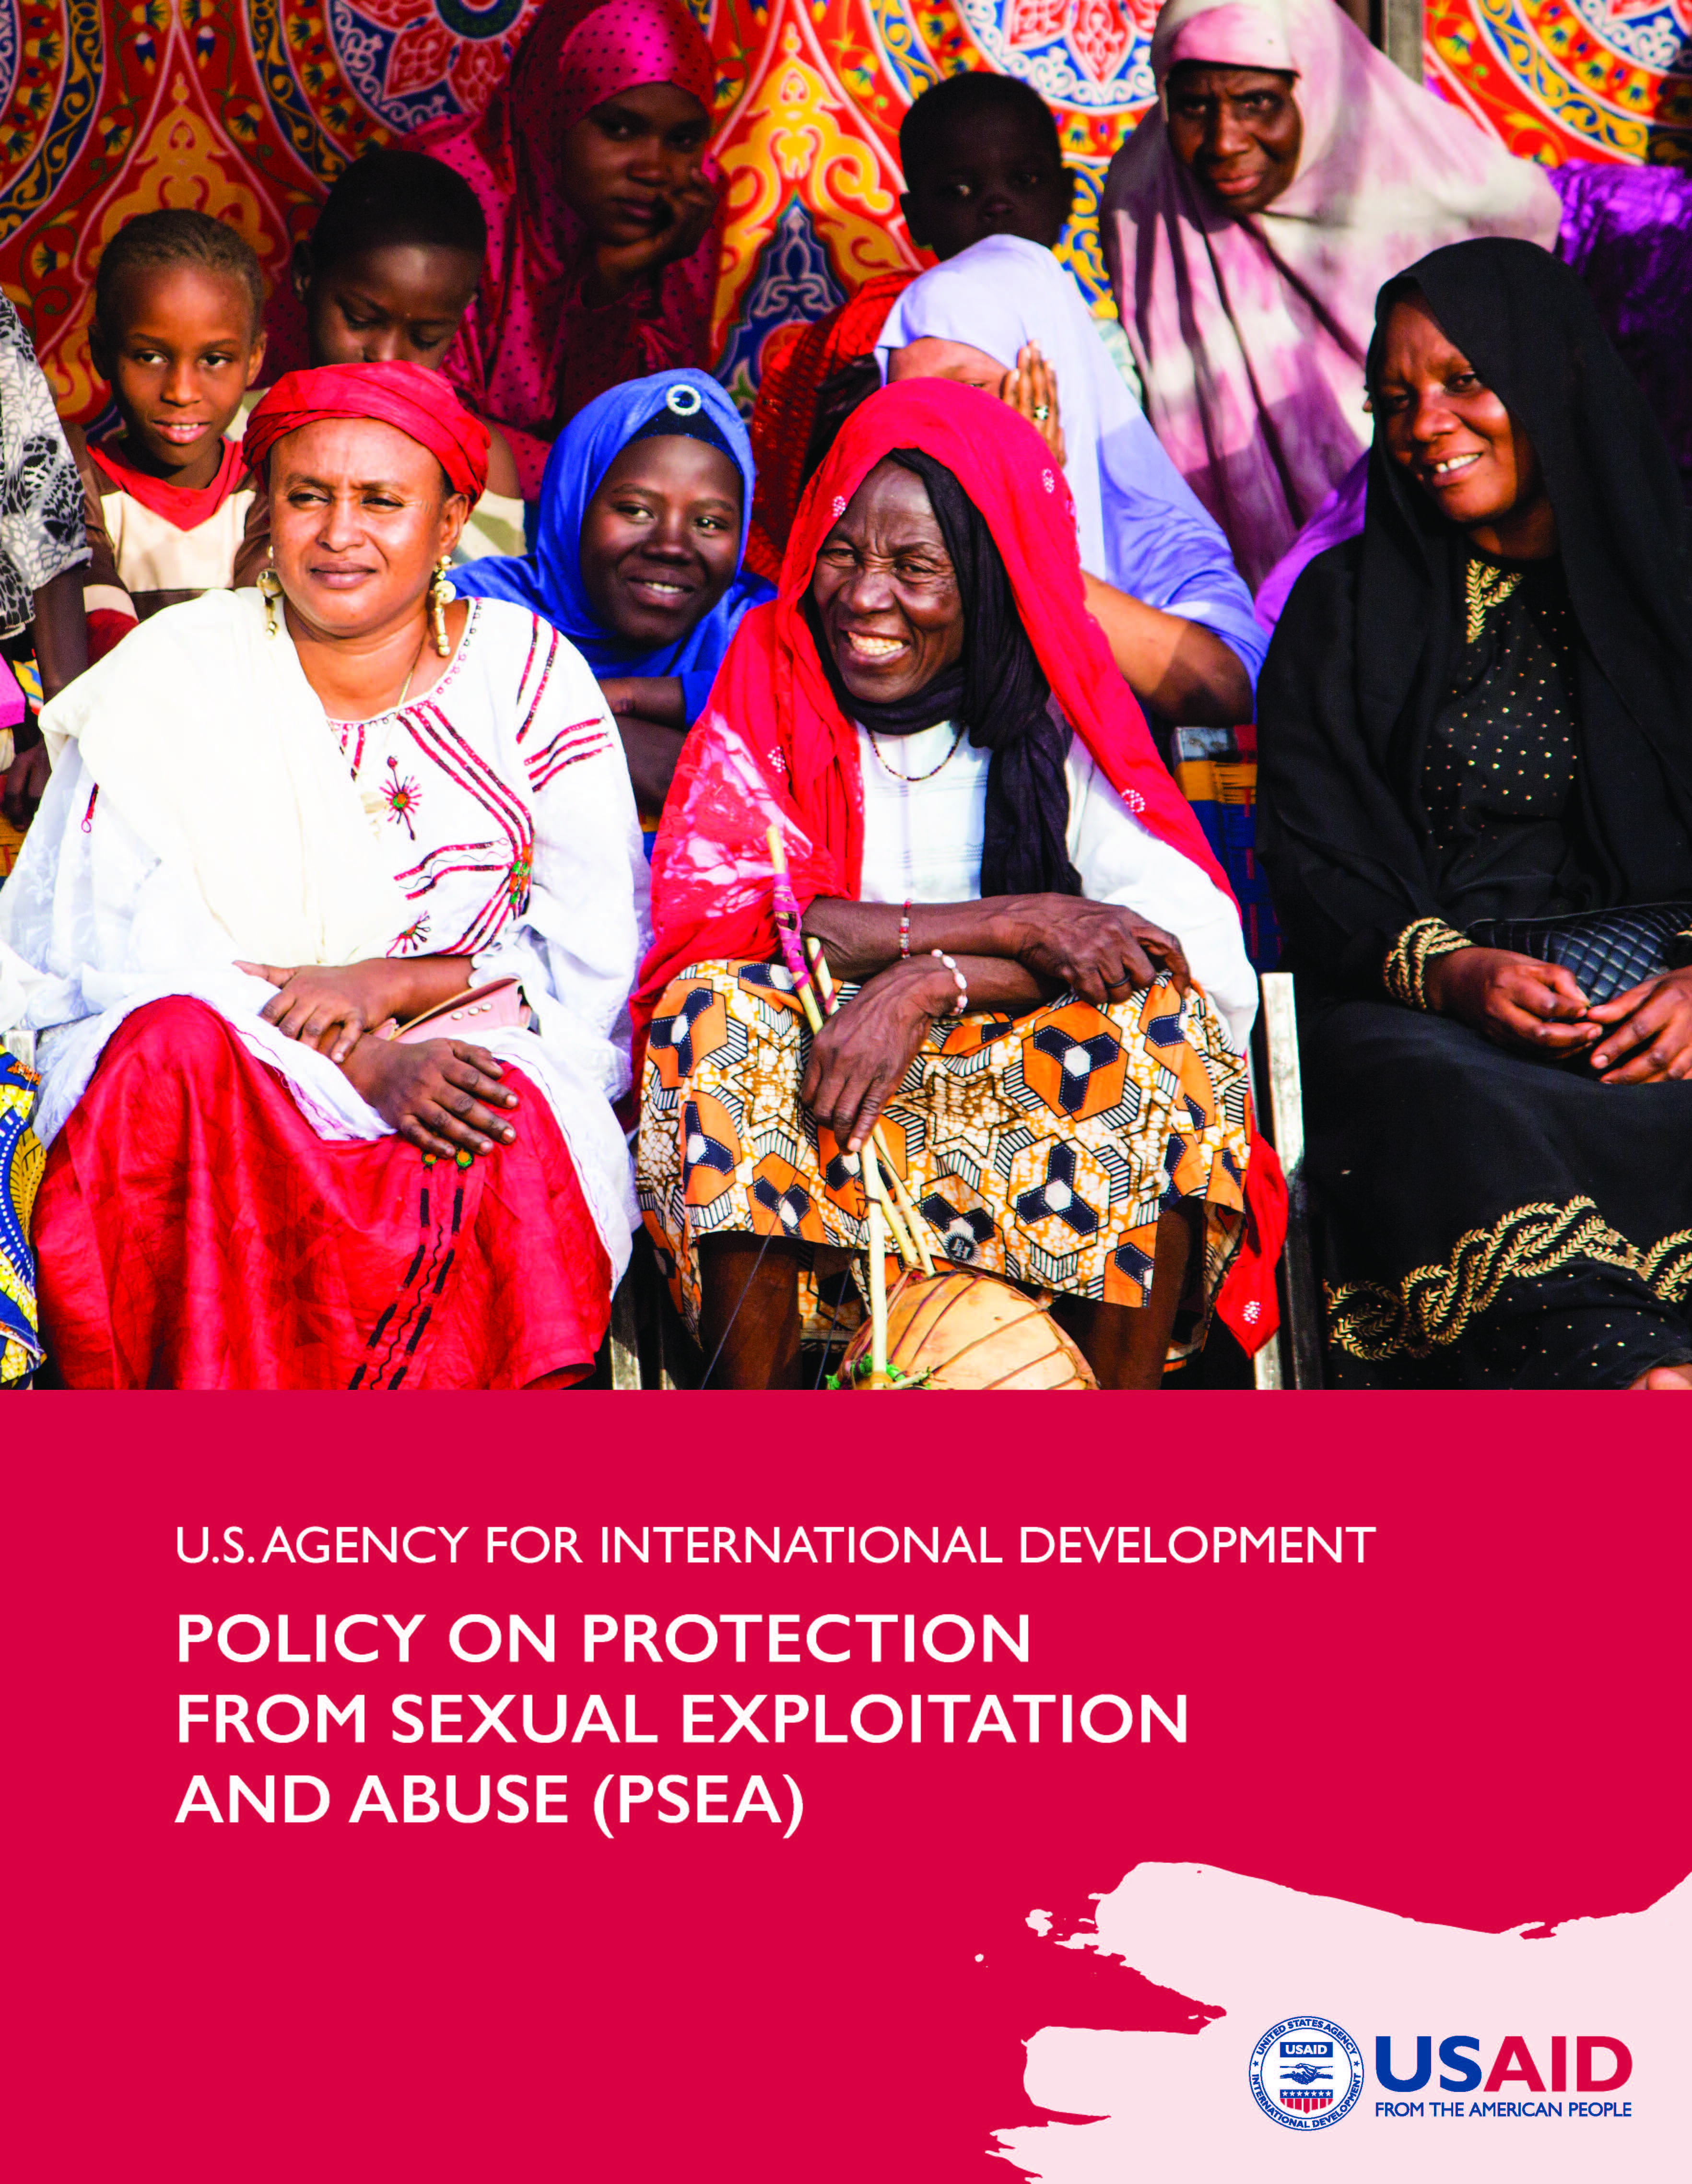 USAID's Protection From Sexual Exploitation and Abuse (PSEA) Policy